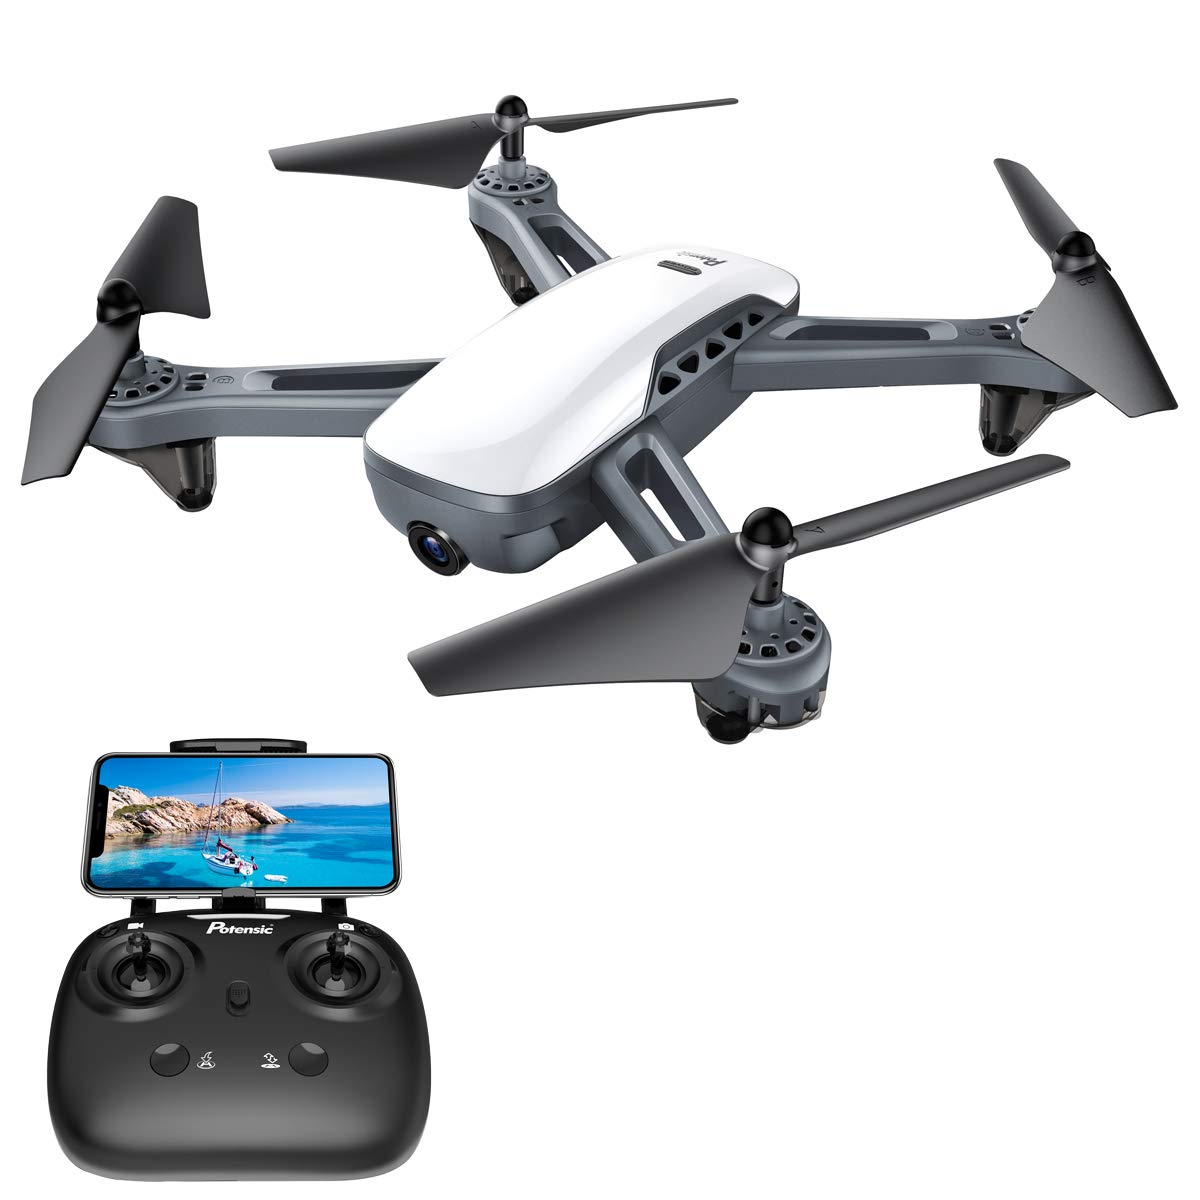 GPS Drones, Potensic D50 Quadcopter with Camera Live Video,GPS Return Home,